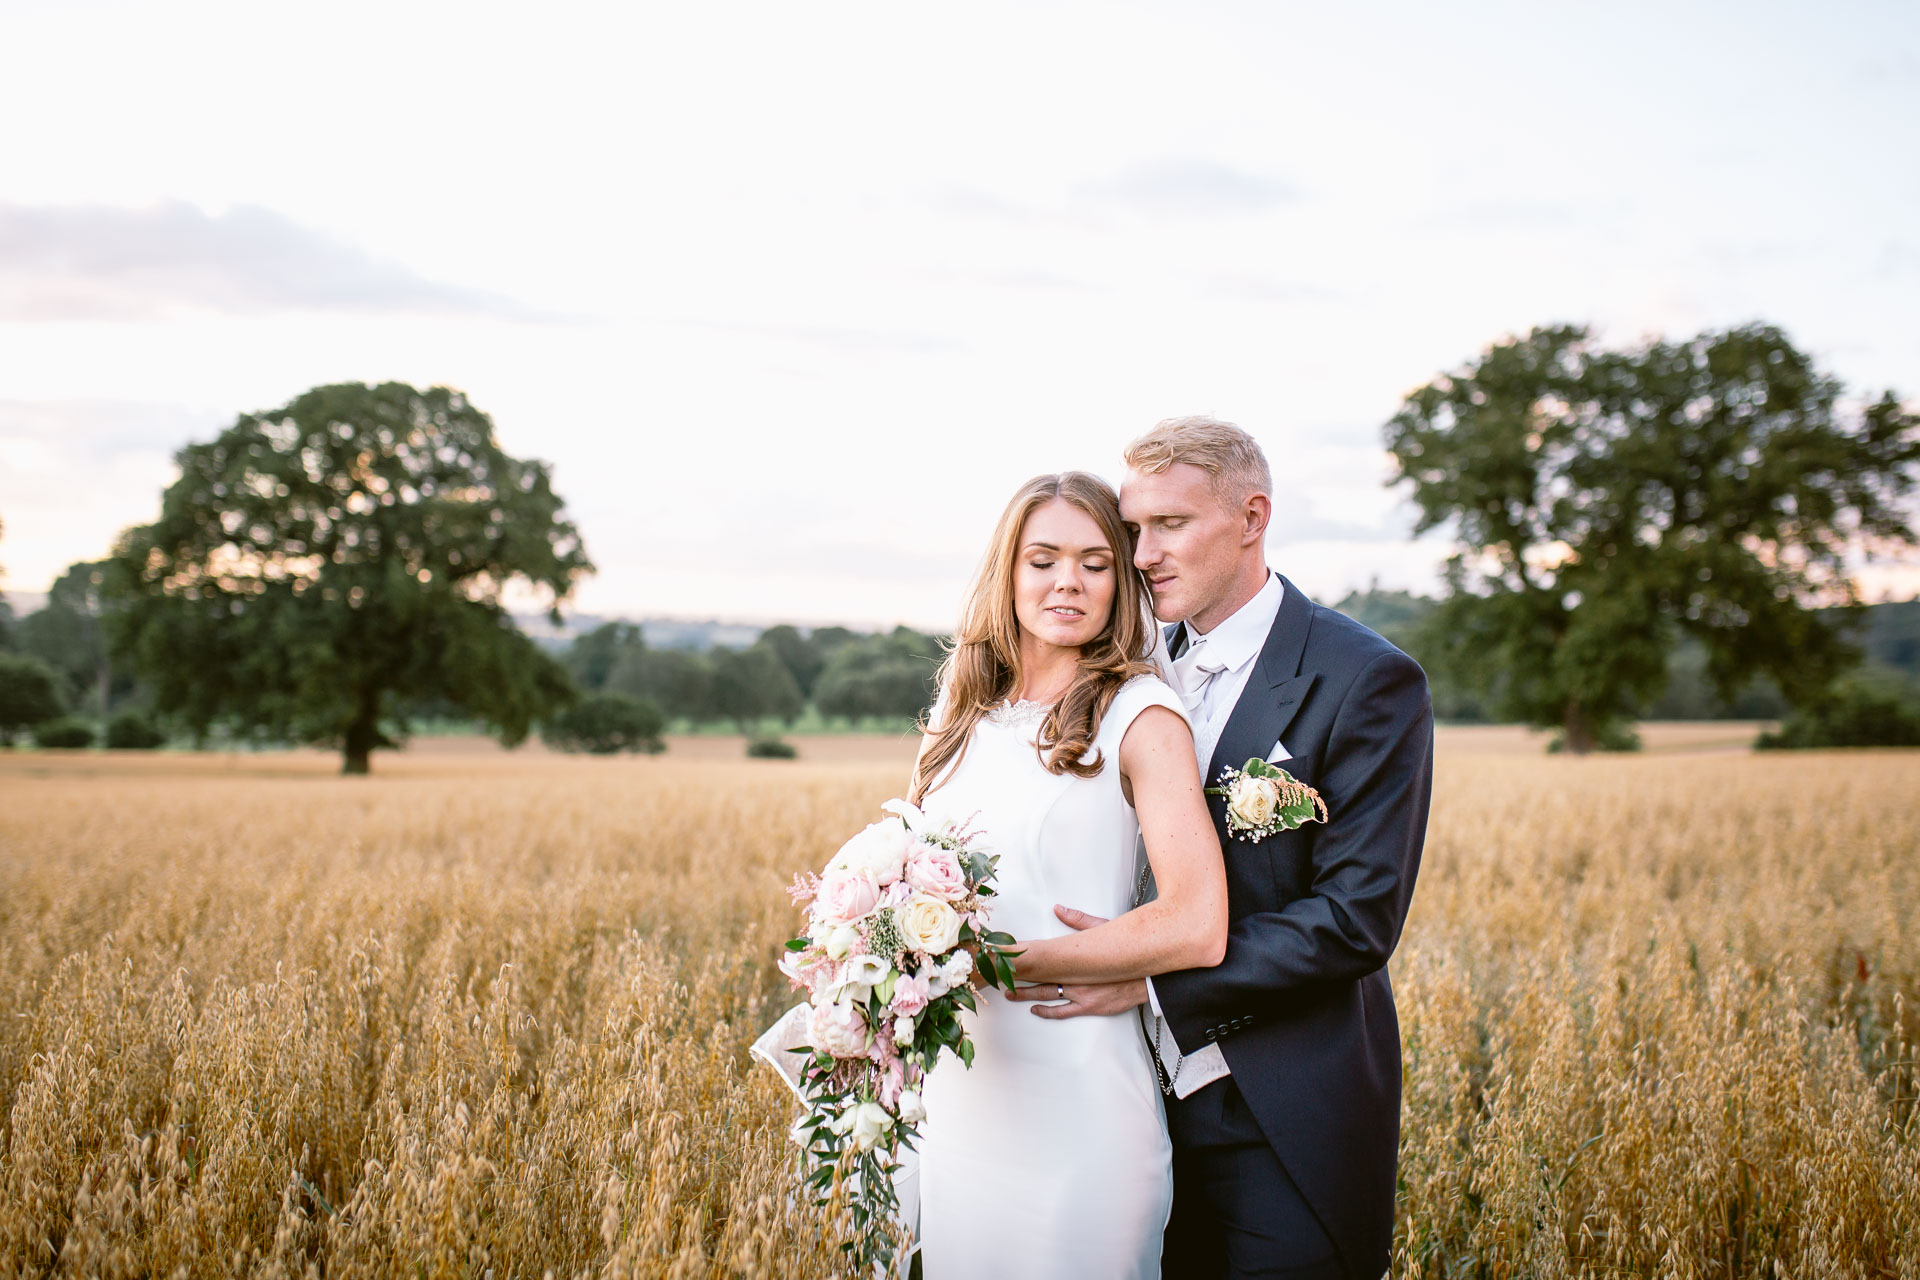 The Citadel wedding Shropshire Sarah-Jane and Steve bride and groom standing in the fields of gold